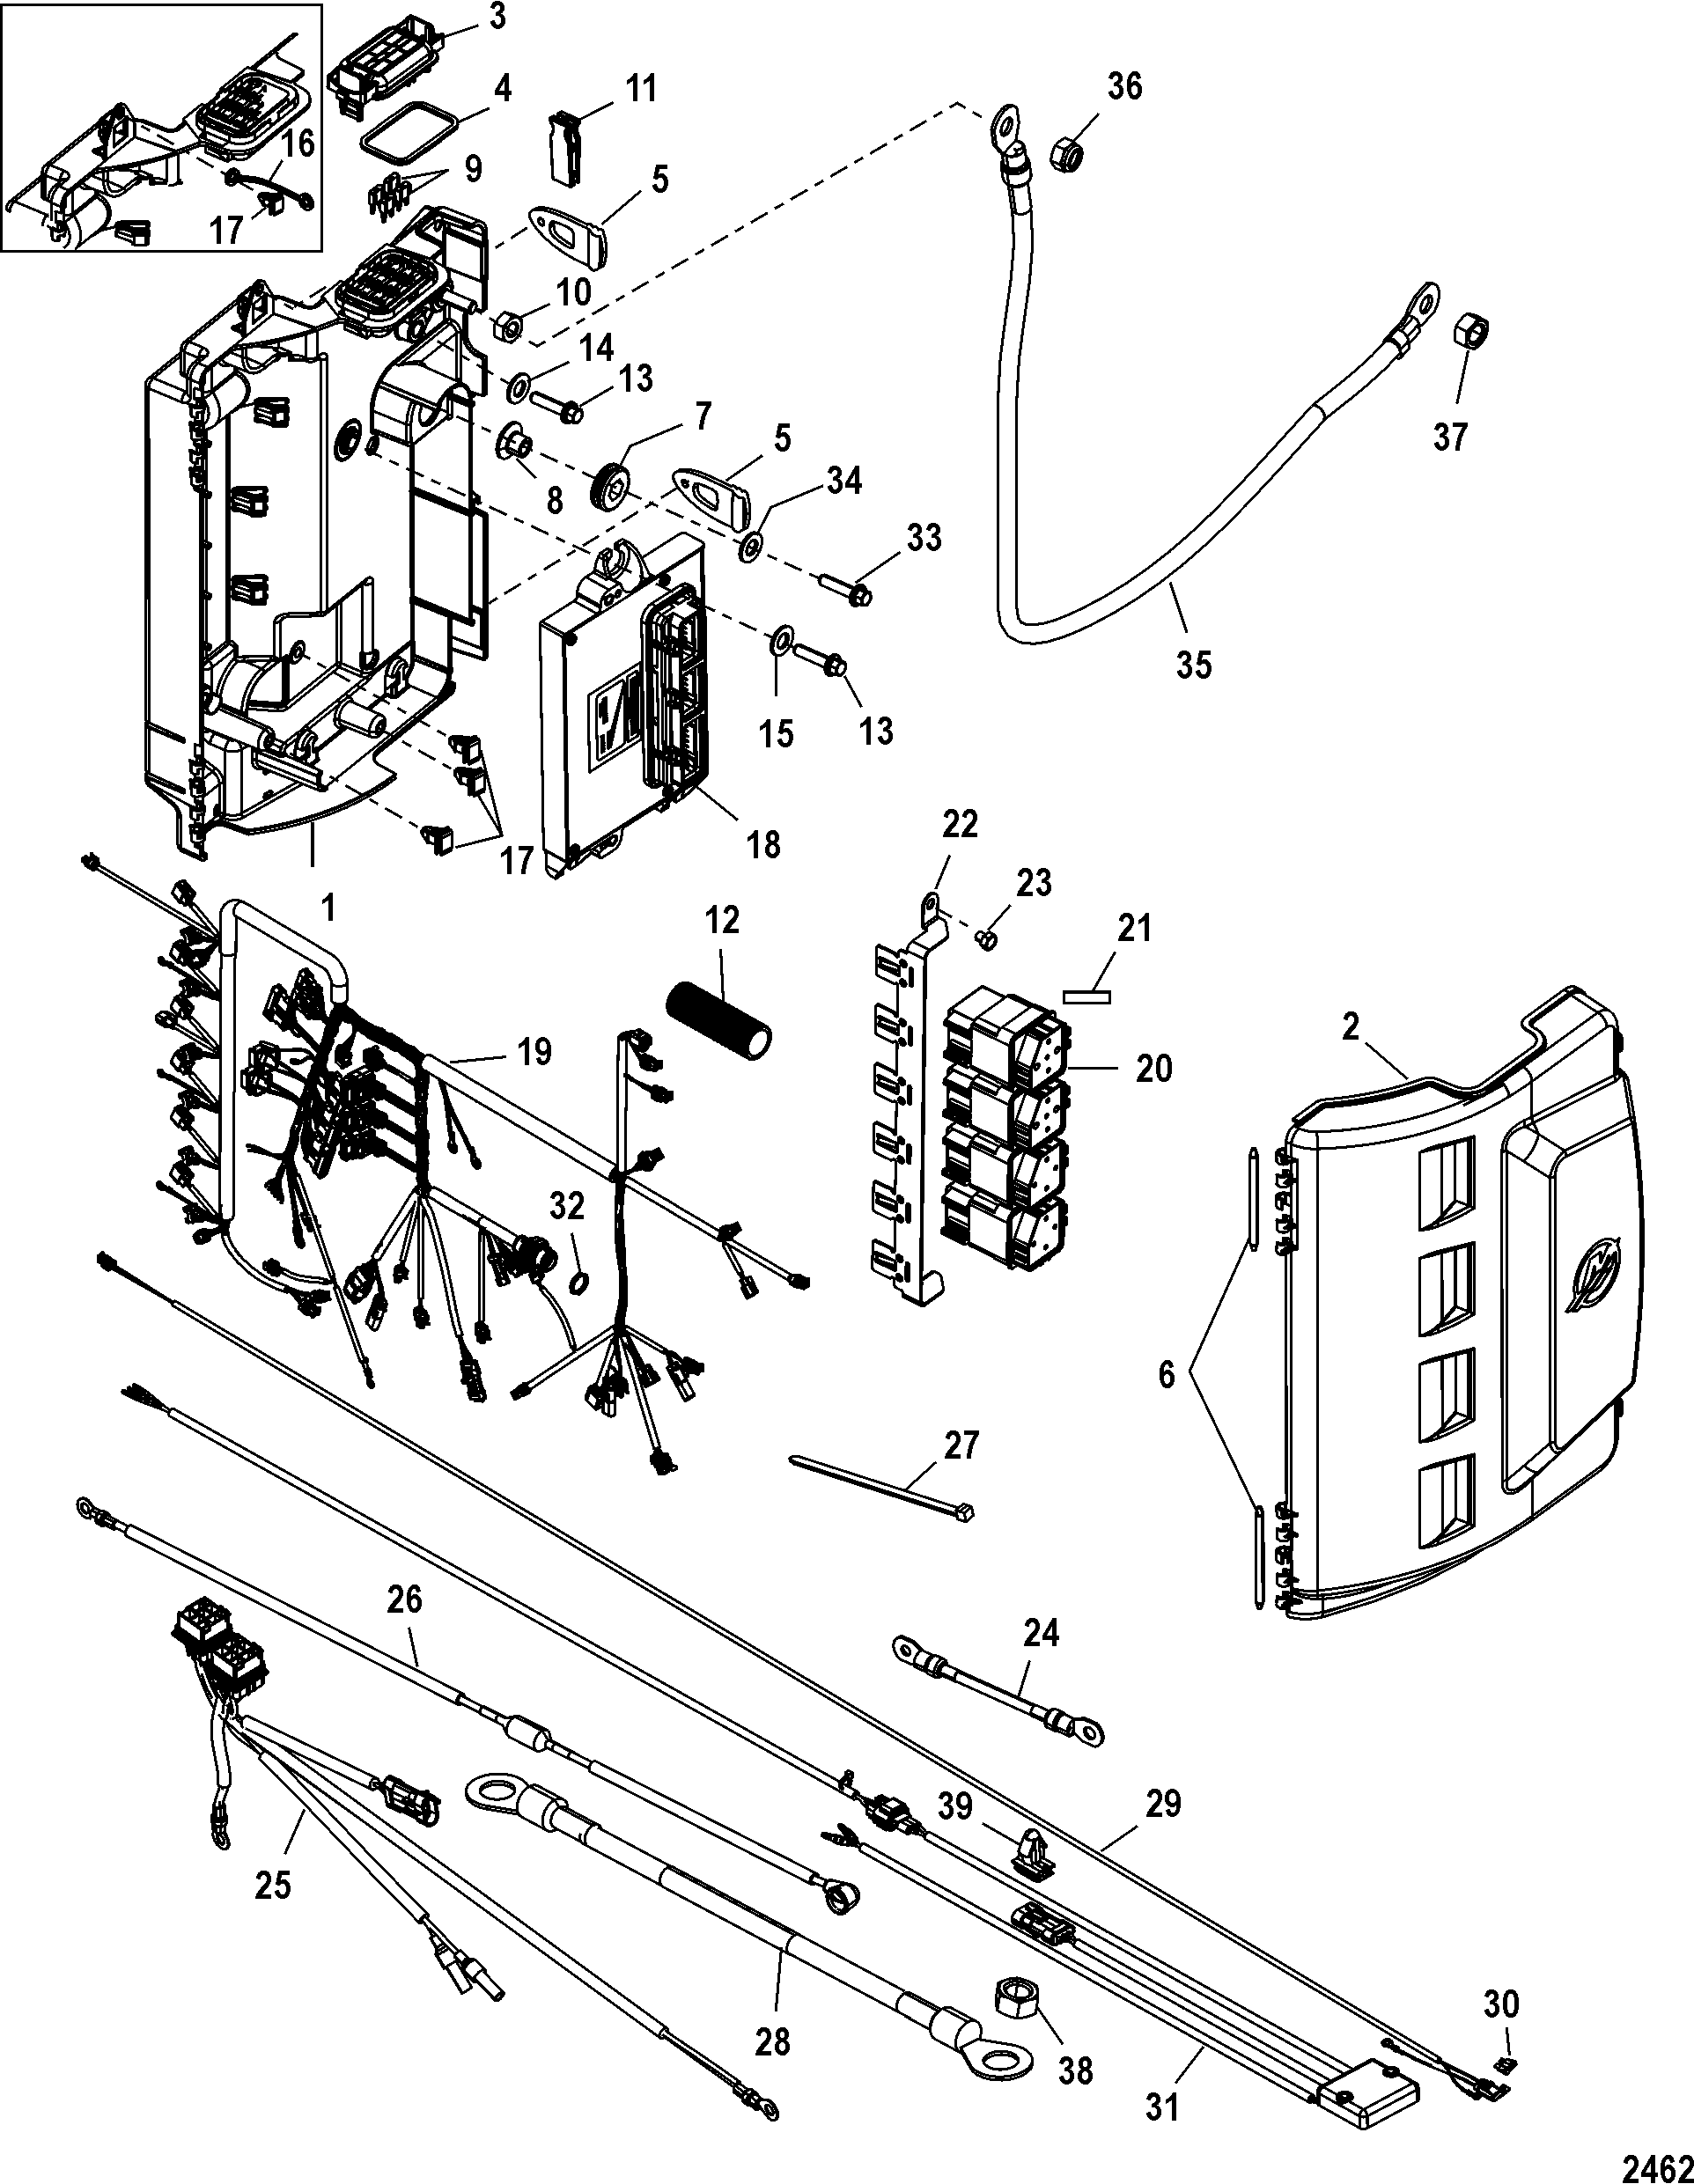 Electrical Box Components For Mariner Mercury 200 225